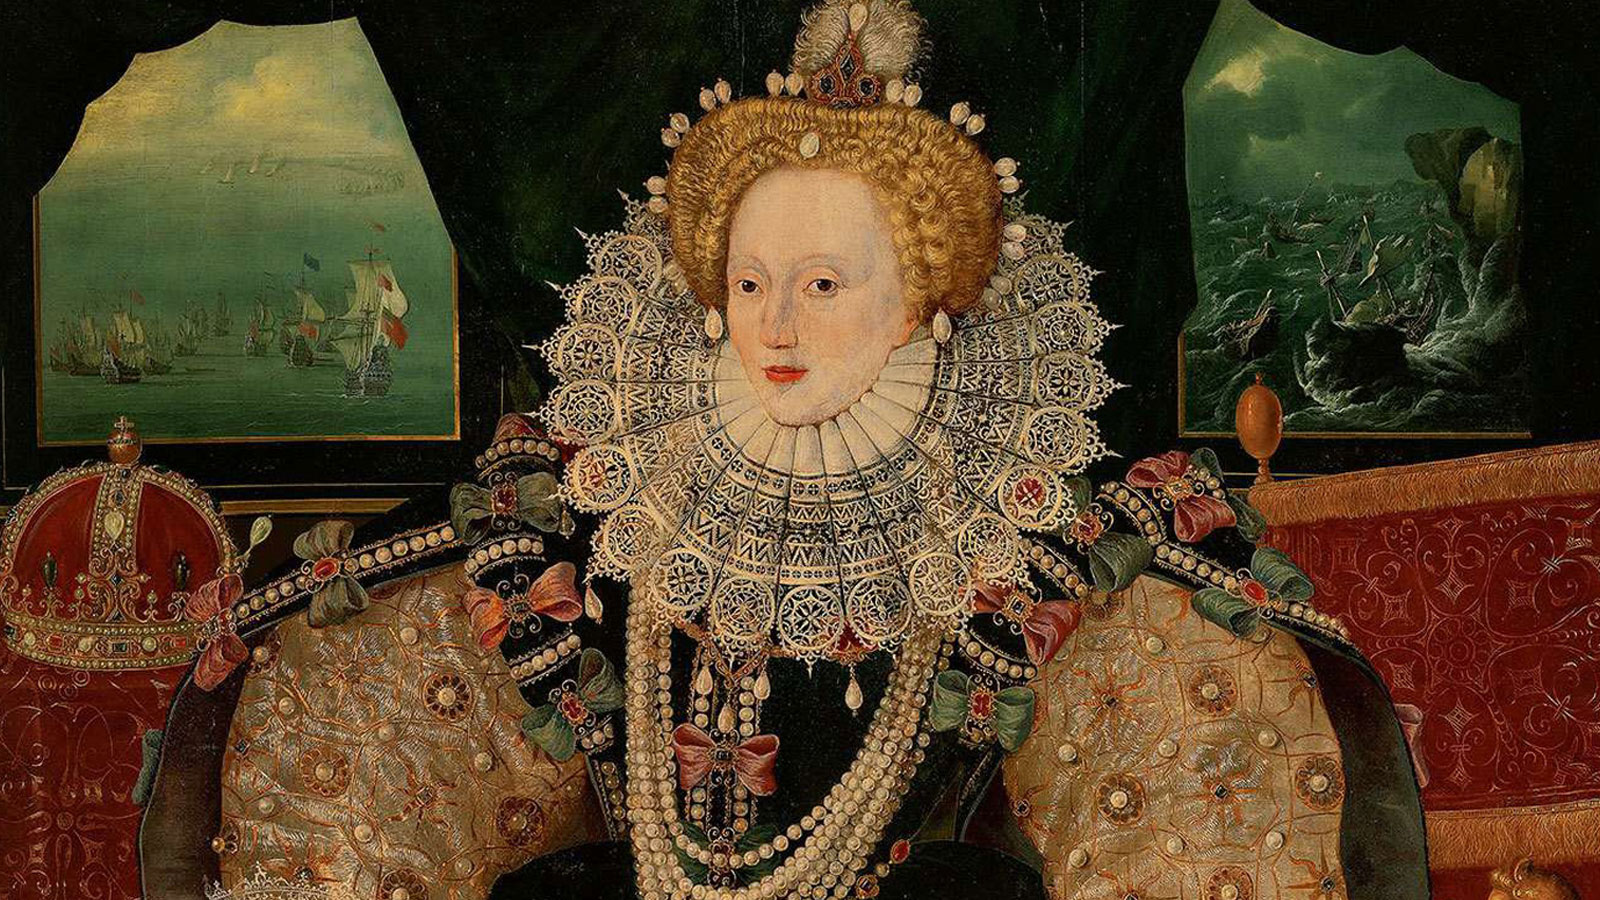 A portrait of Queen Elizabeth I dressed in very ornate clothing and jewels with an ornate red and gold seat, a red and jeweled crown, and images of ships on the sea in the background